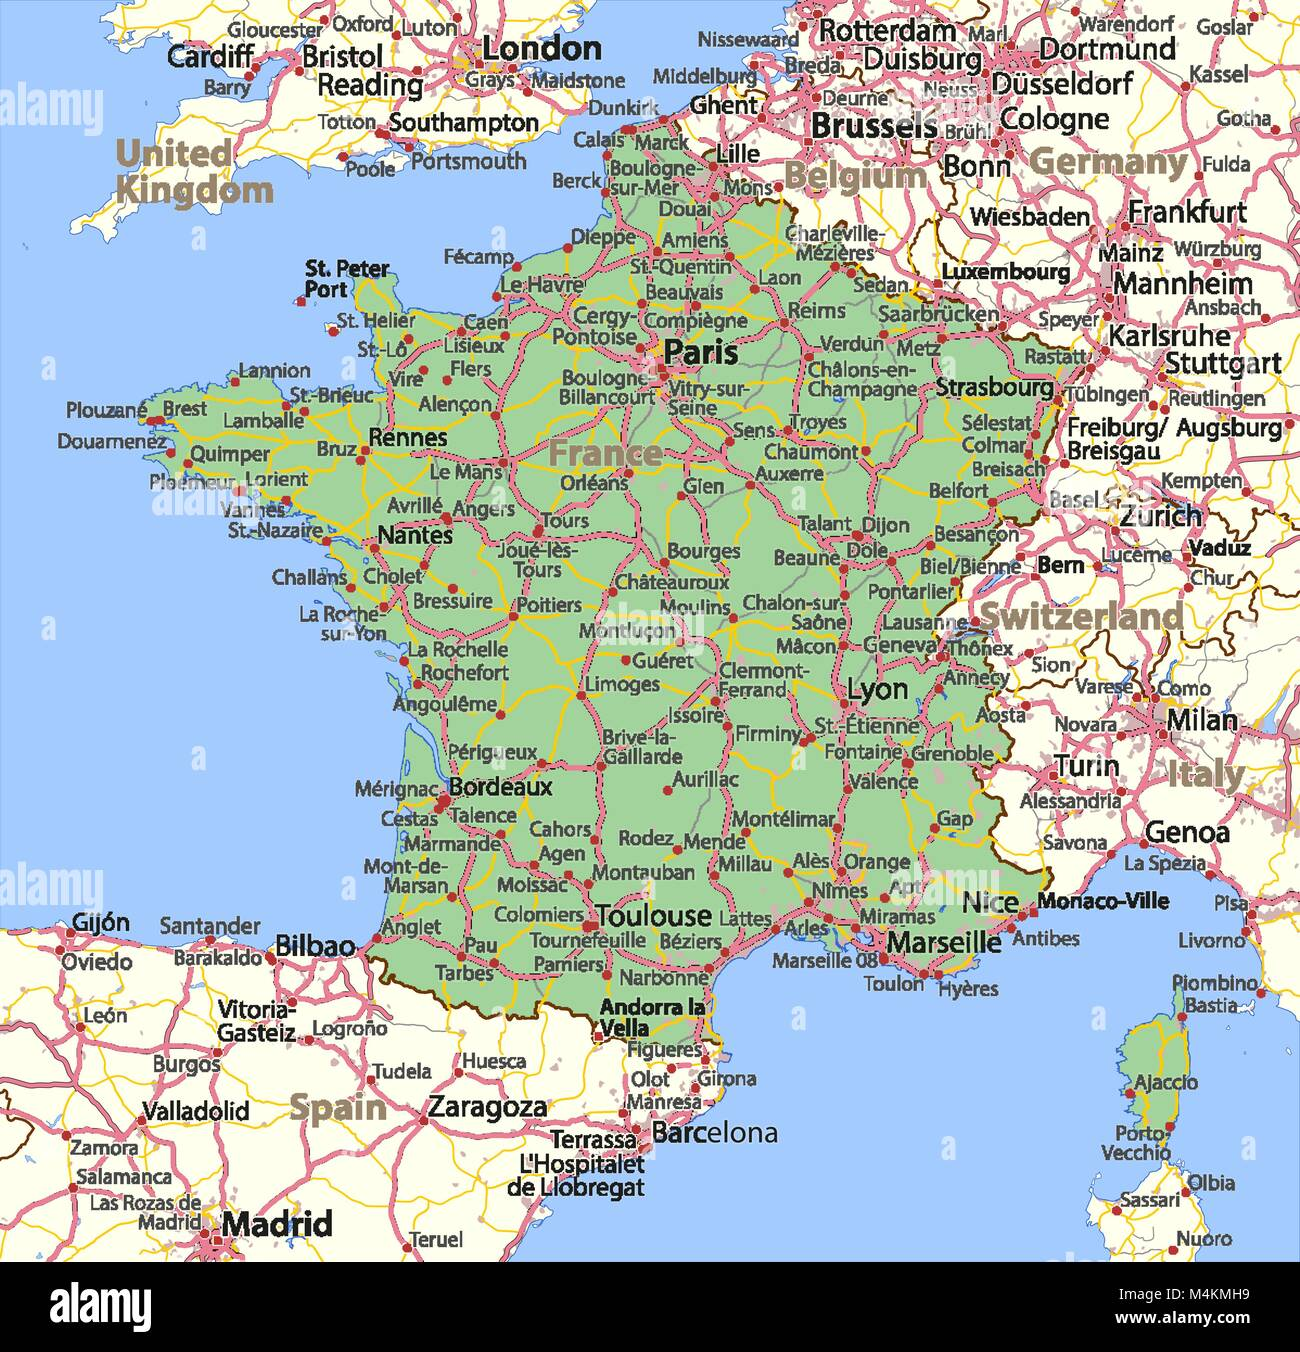 Map Of France In English.Map Of France Shows Country Borders Urban Areas Place Names And